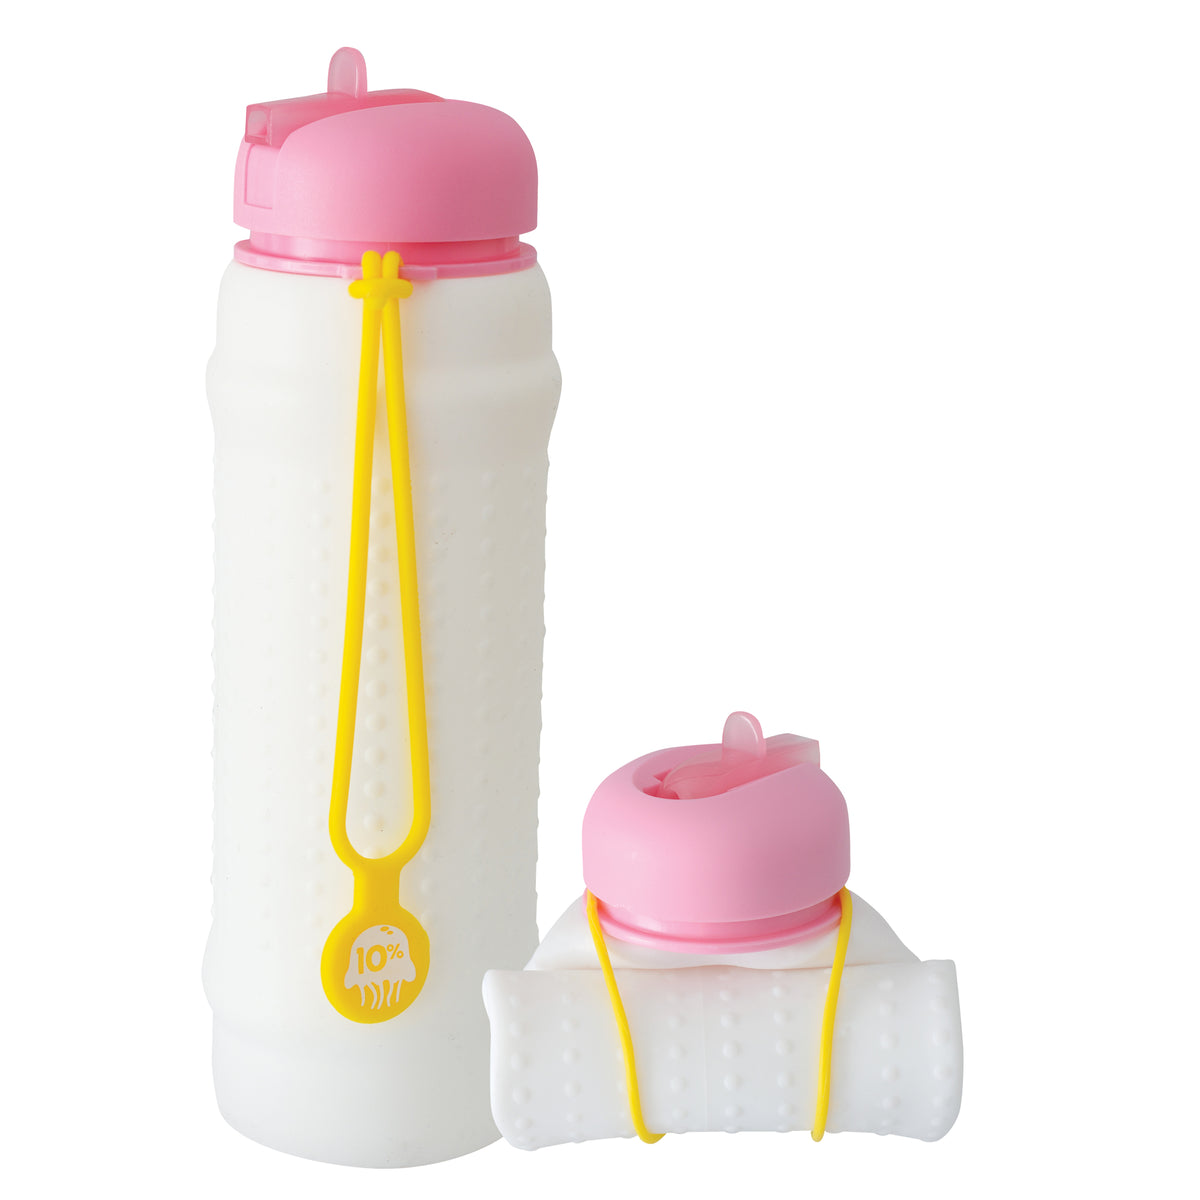 Rolla Bottle - White, Pink Lid + Yellow Strap